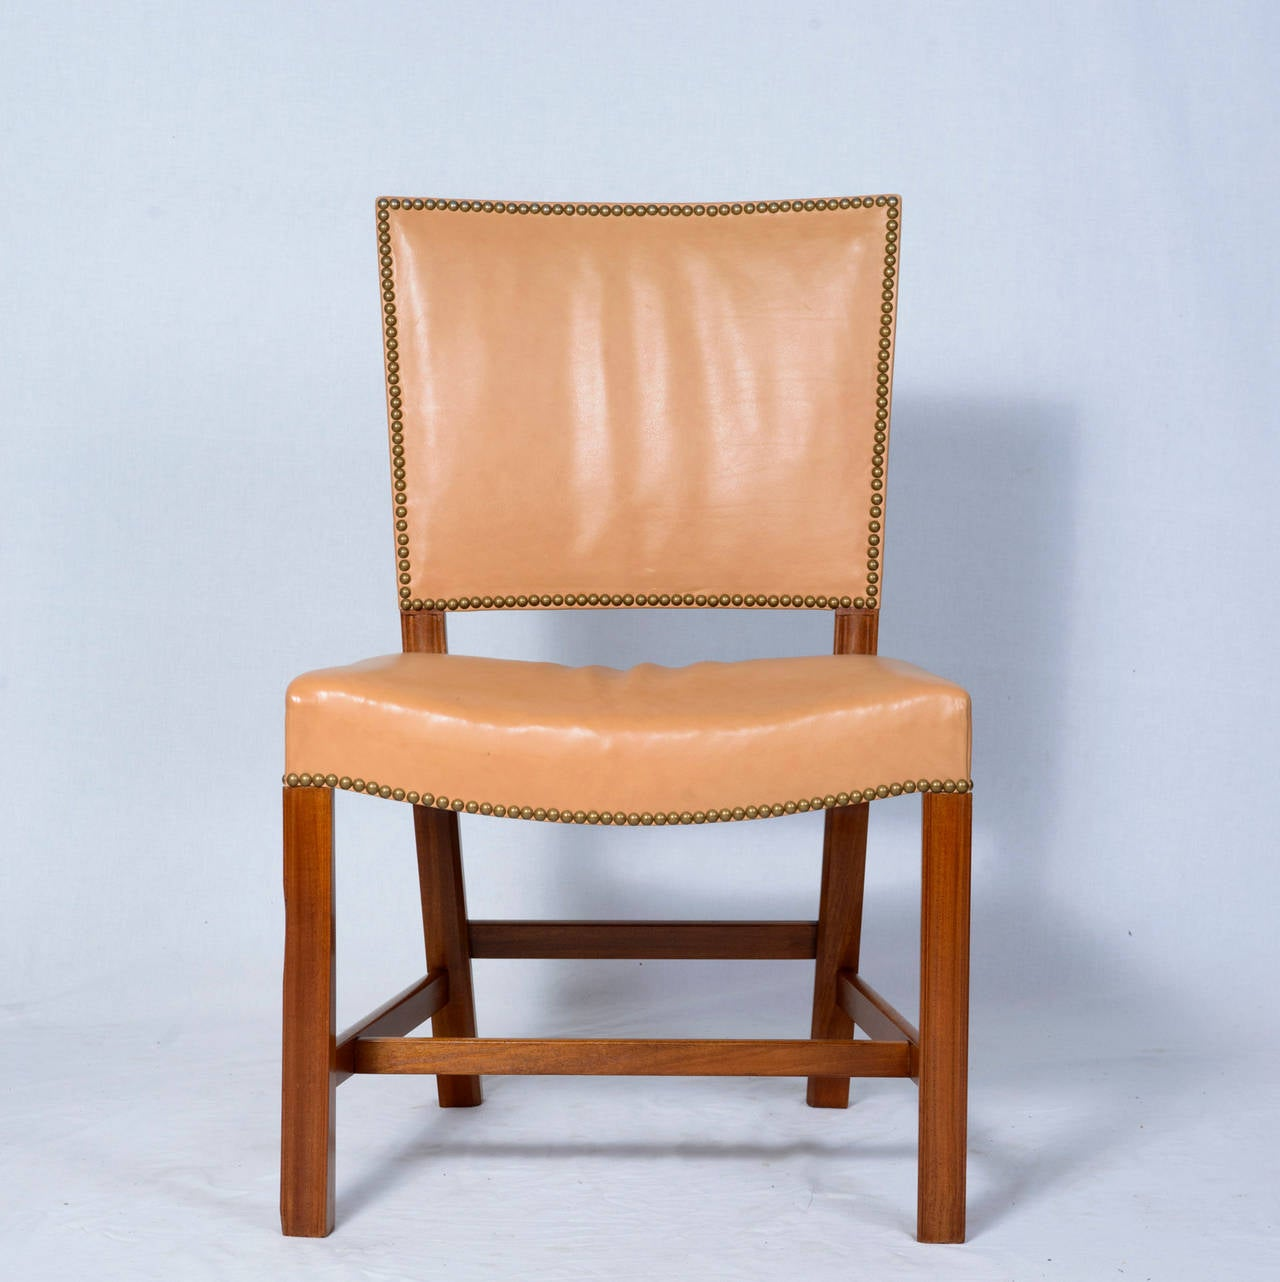 Kaare Klint side chair designed in 1927 and produced by Rud Rasmussen.